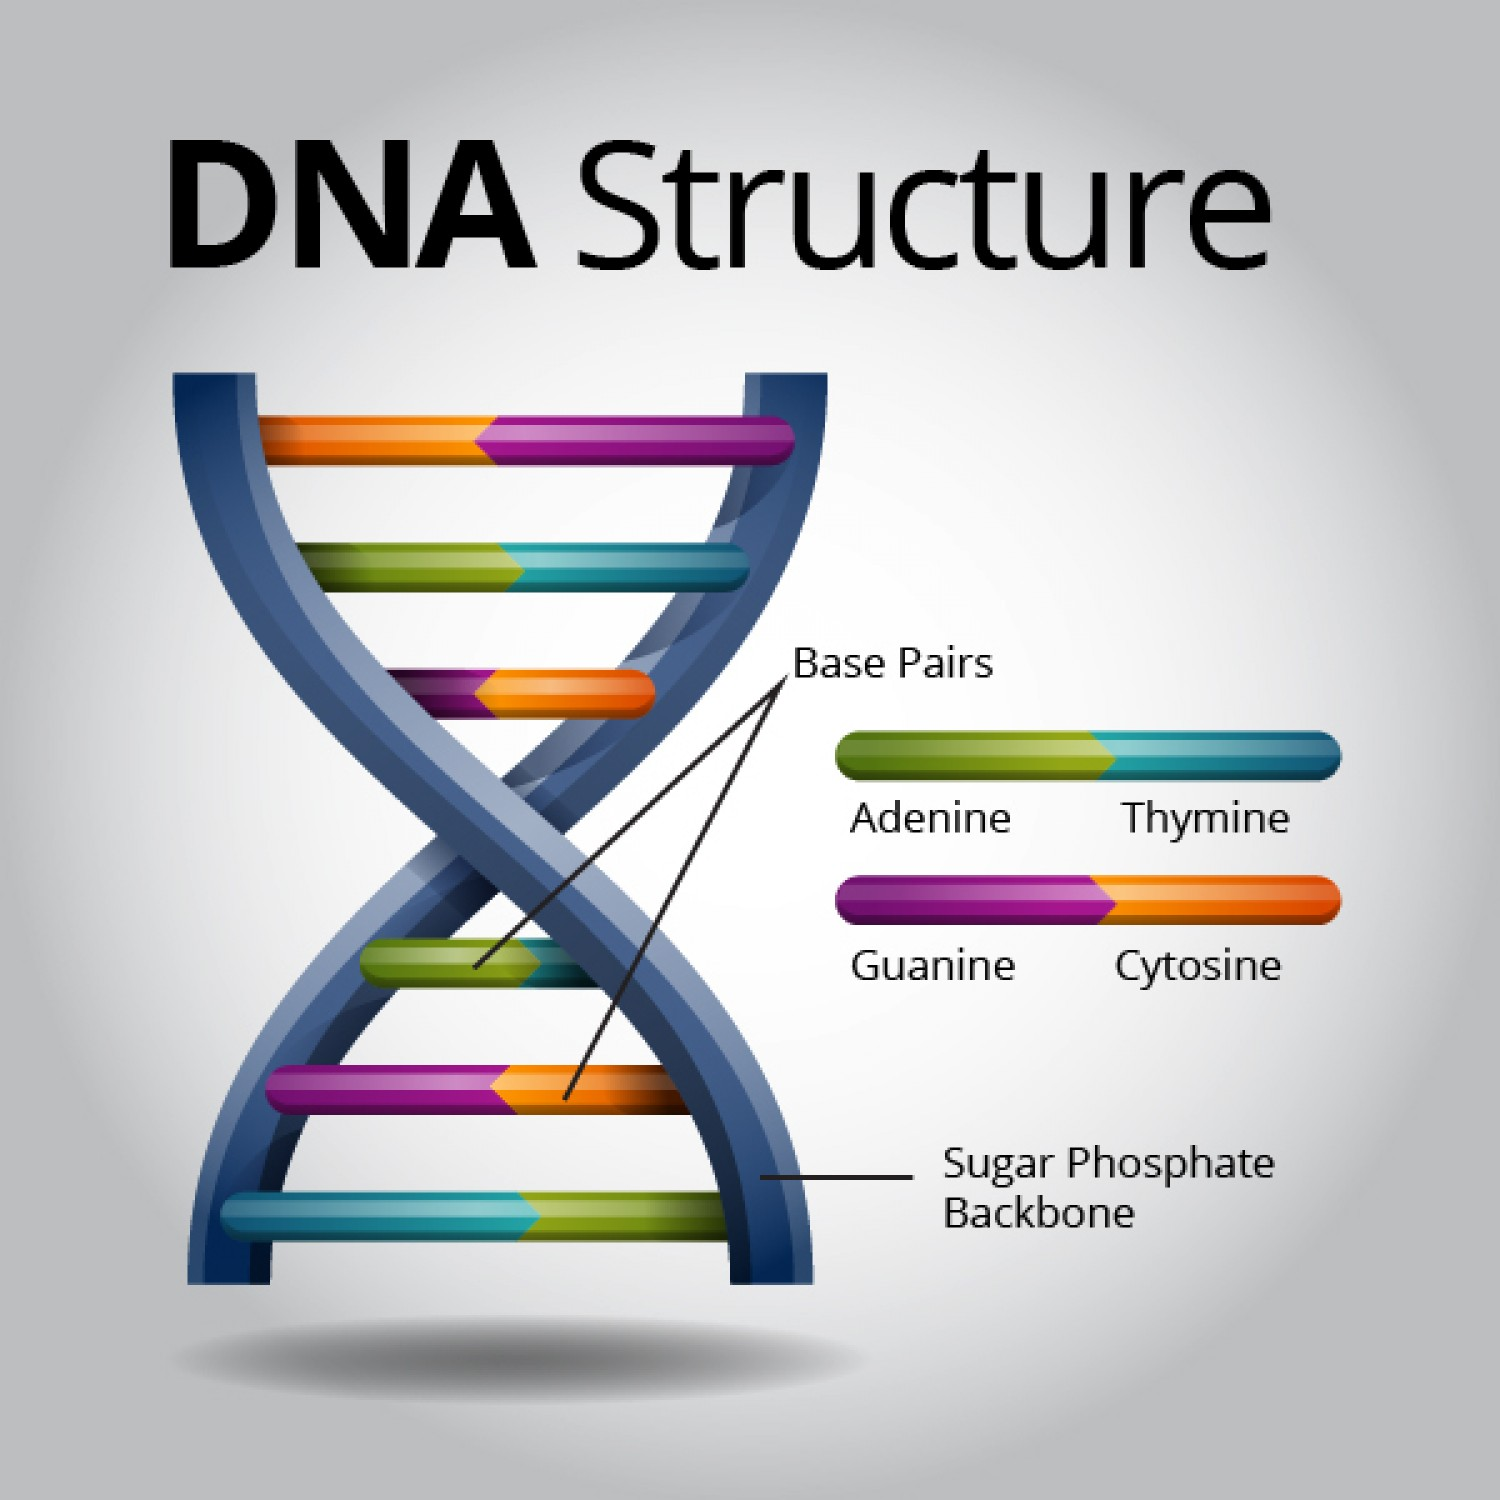 for what molecule do genes contain the instructions for building